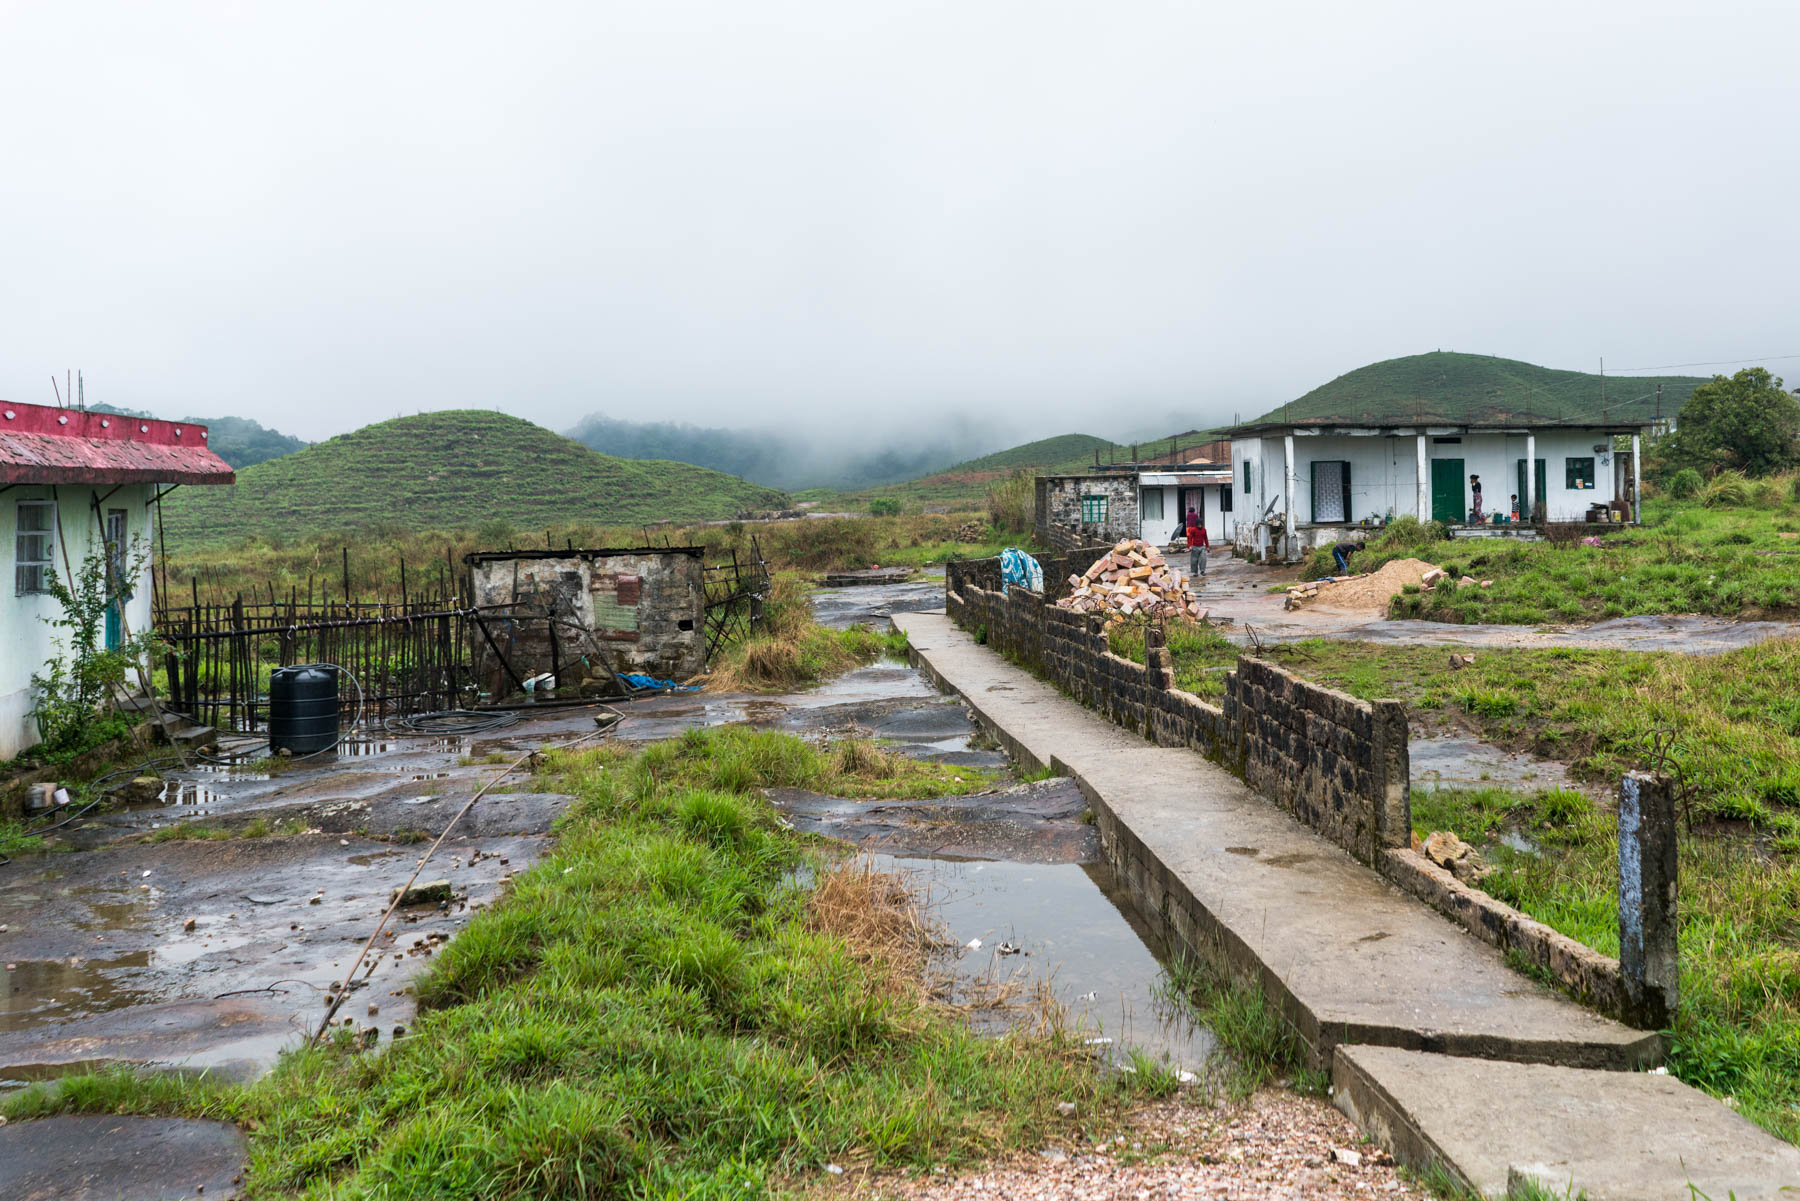 A path and some houses in Cherrapunjee